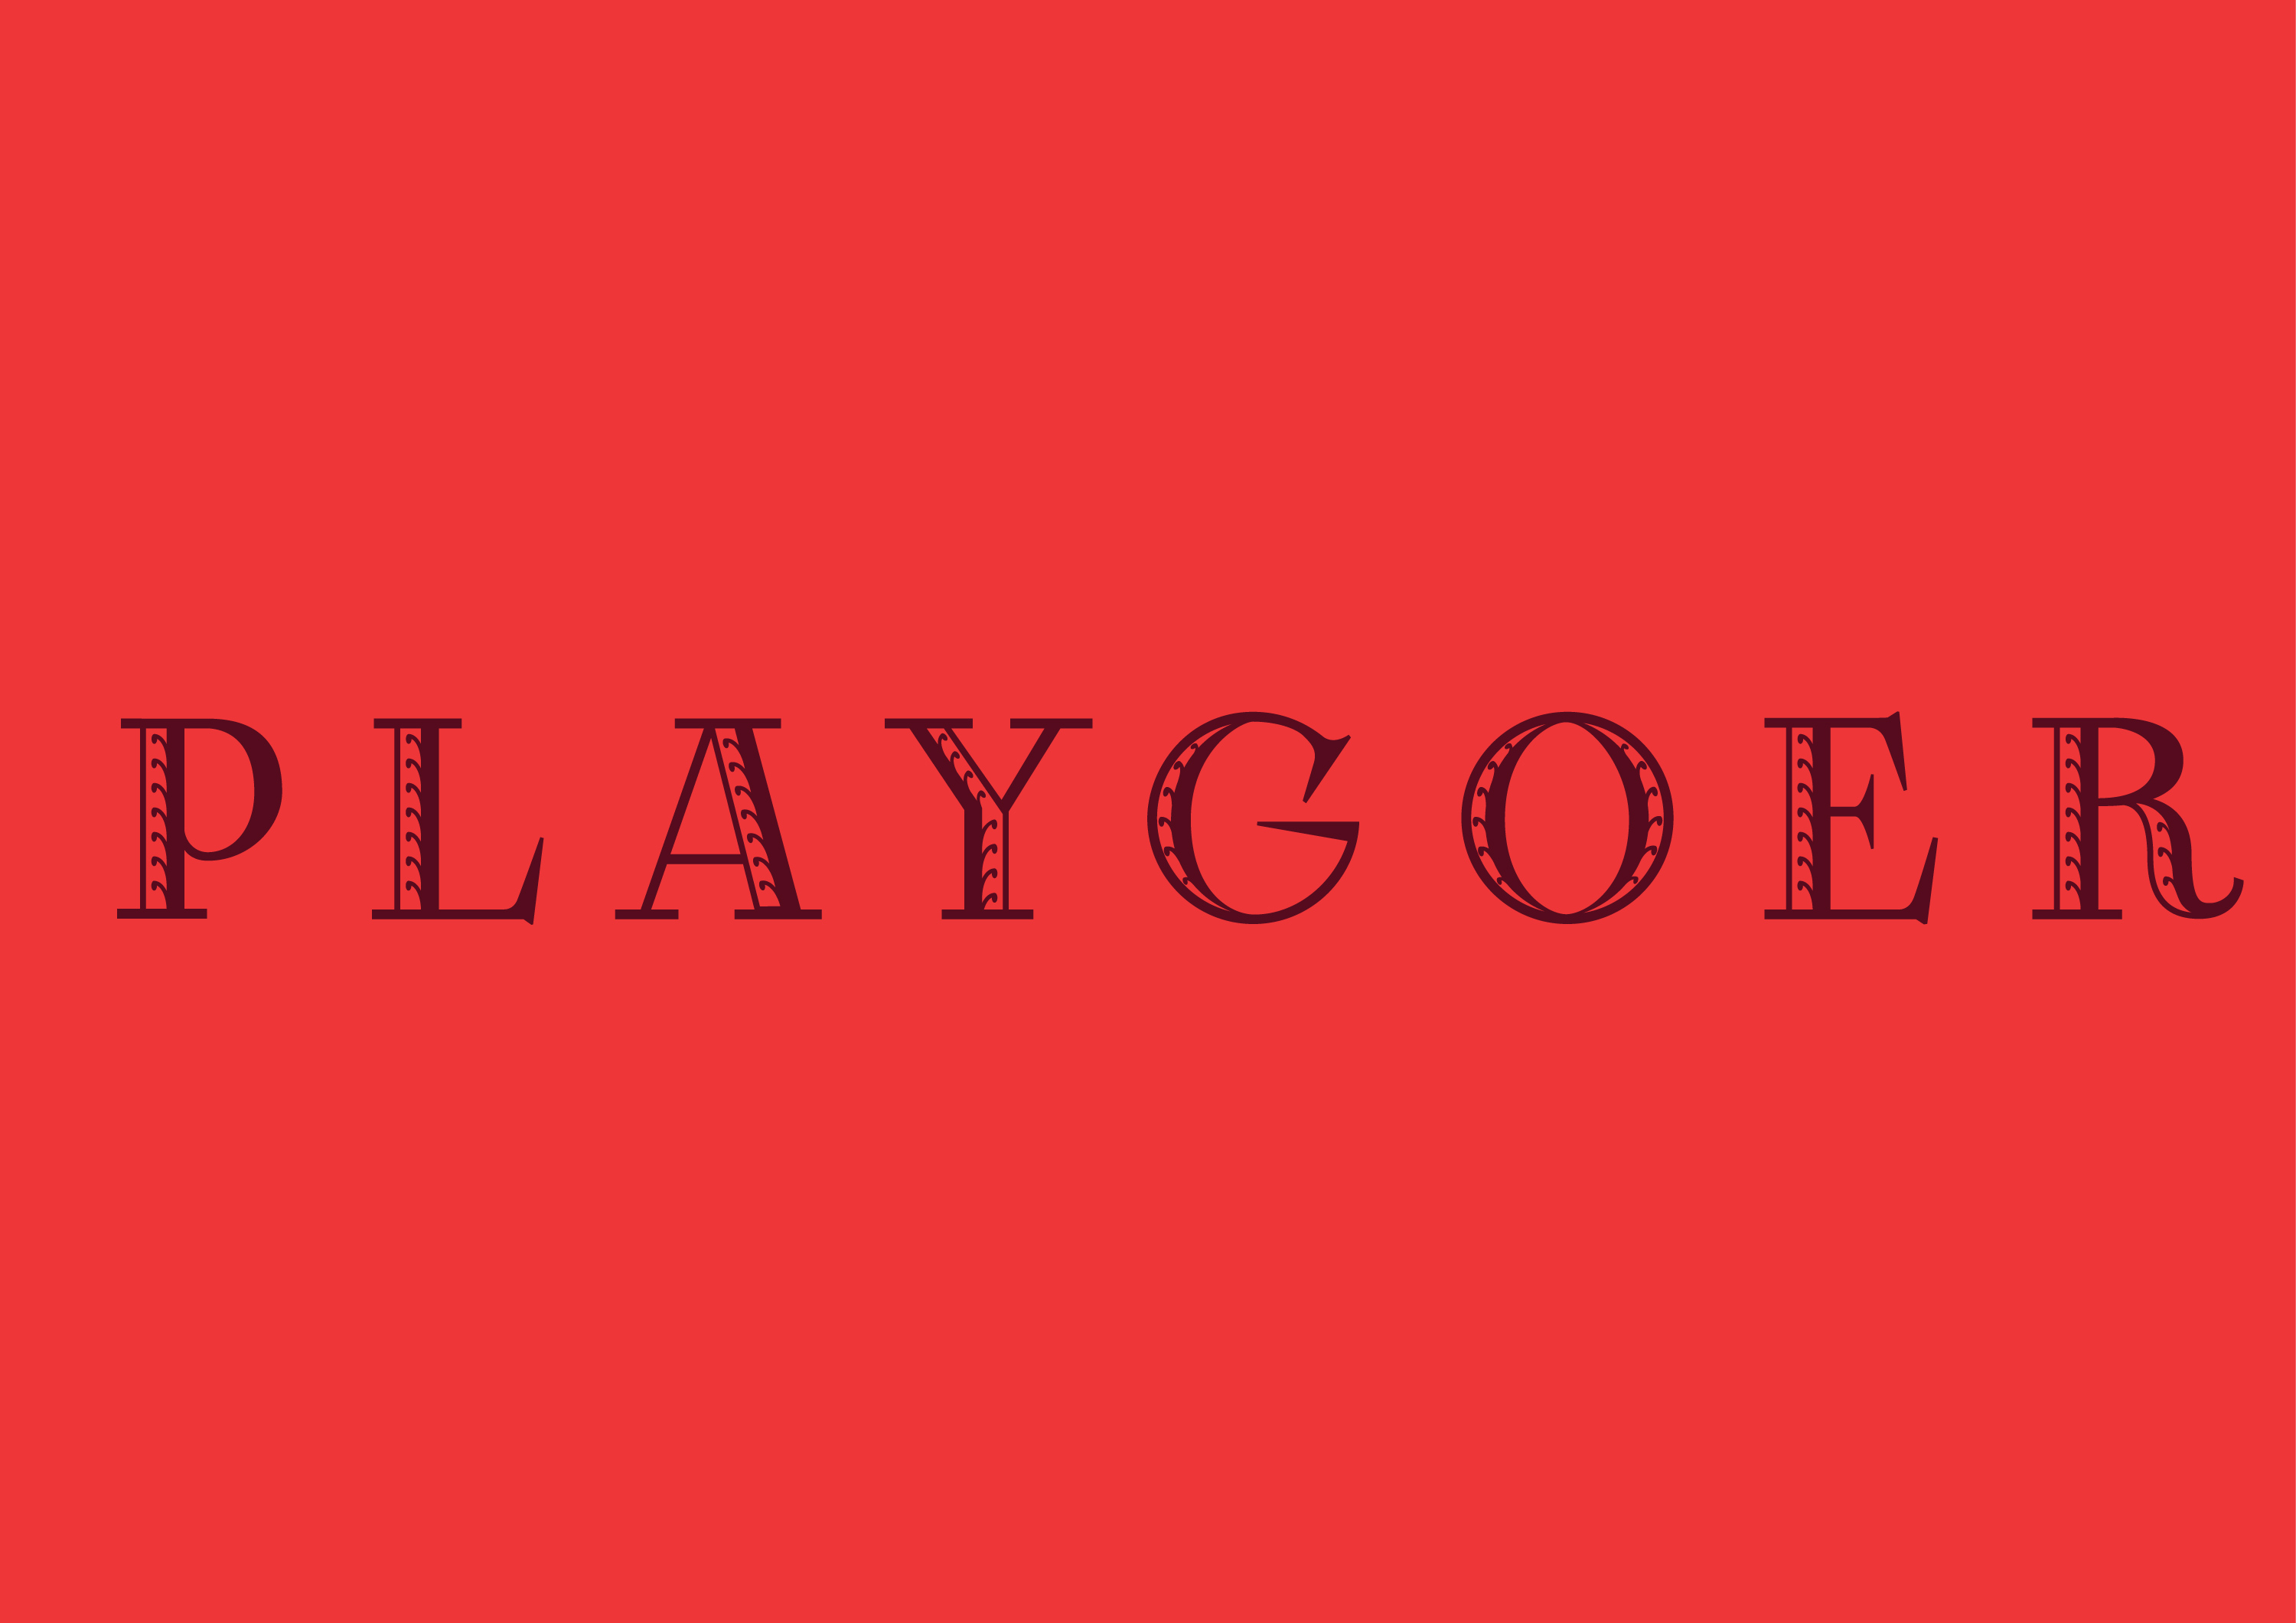 5_playgoer